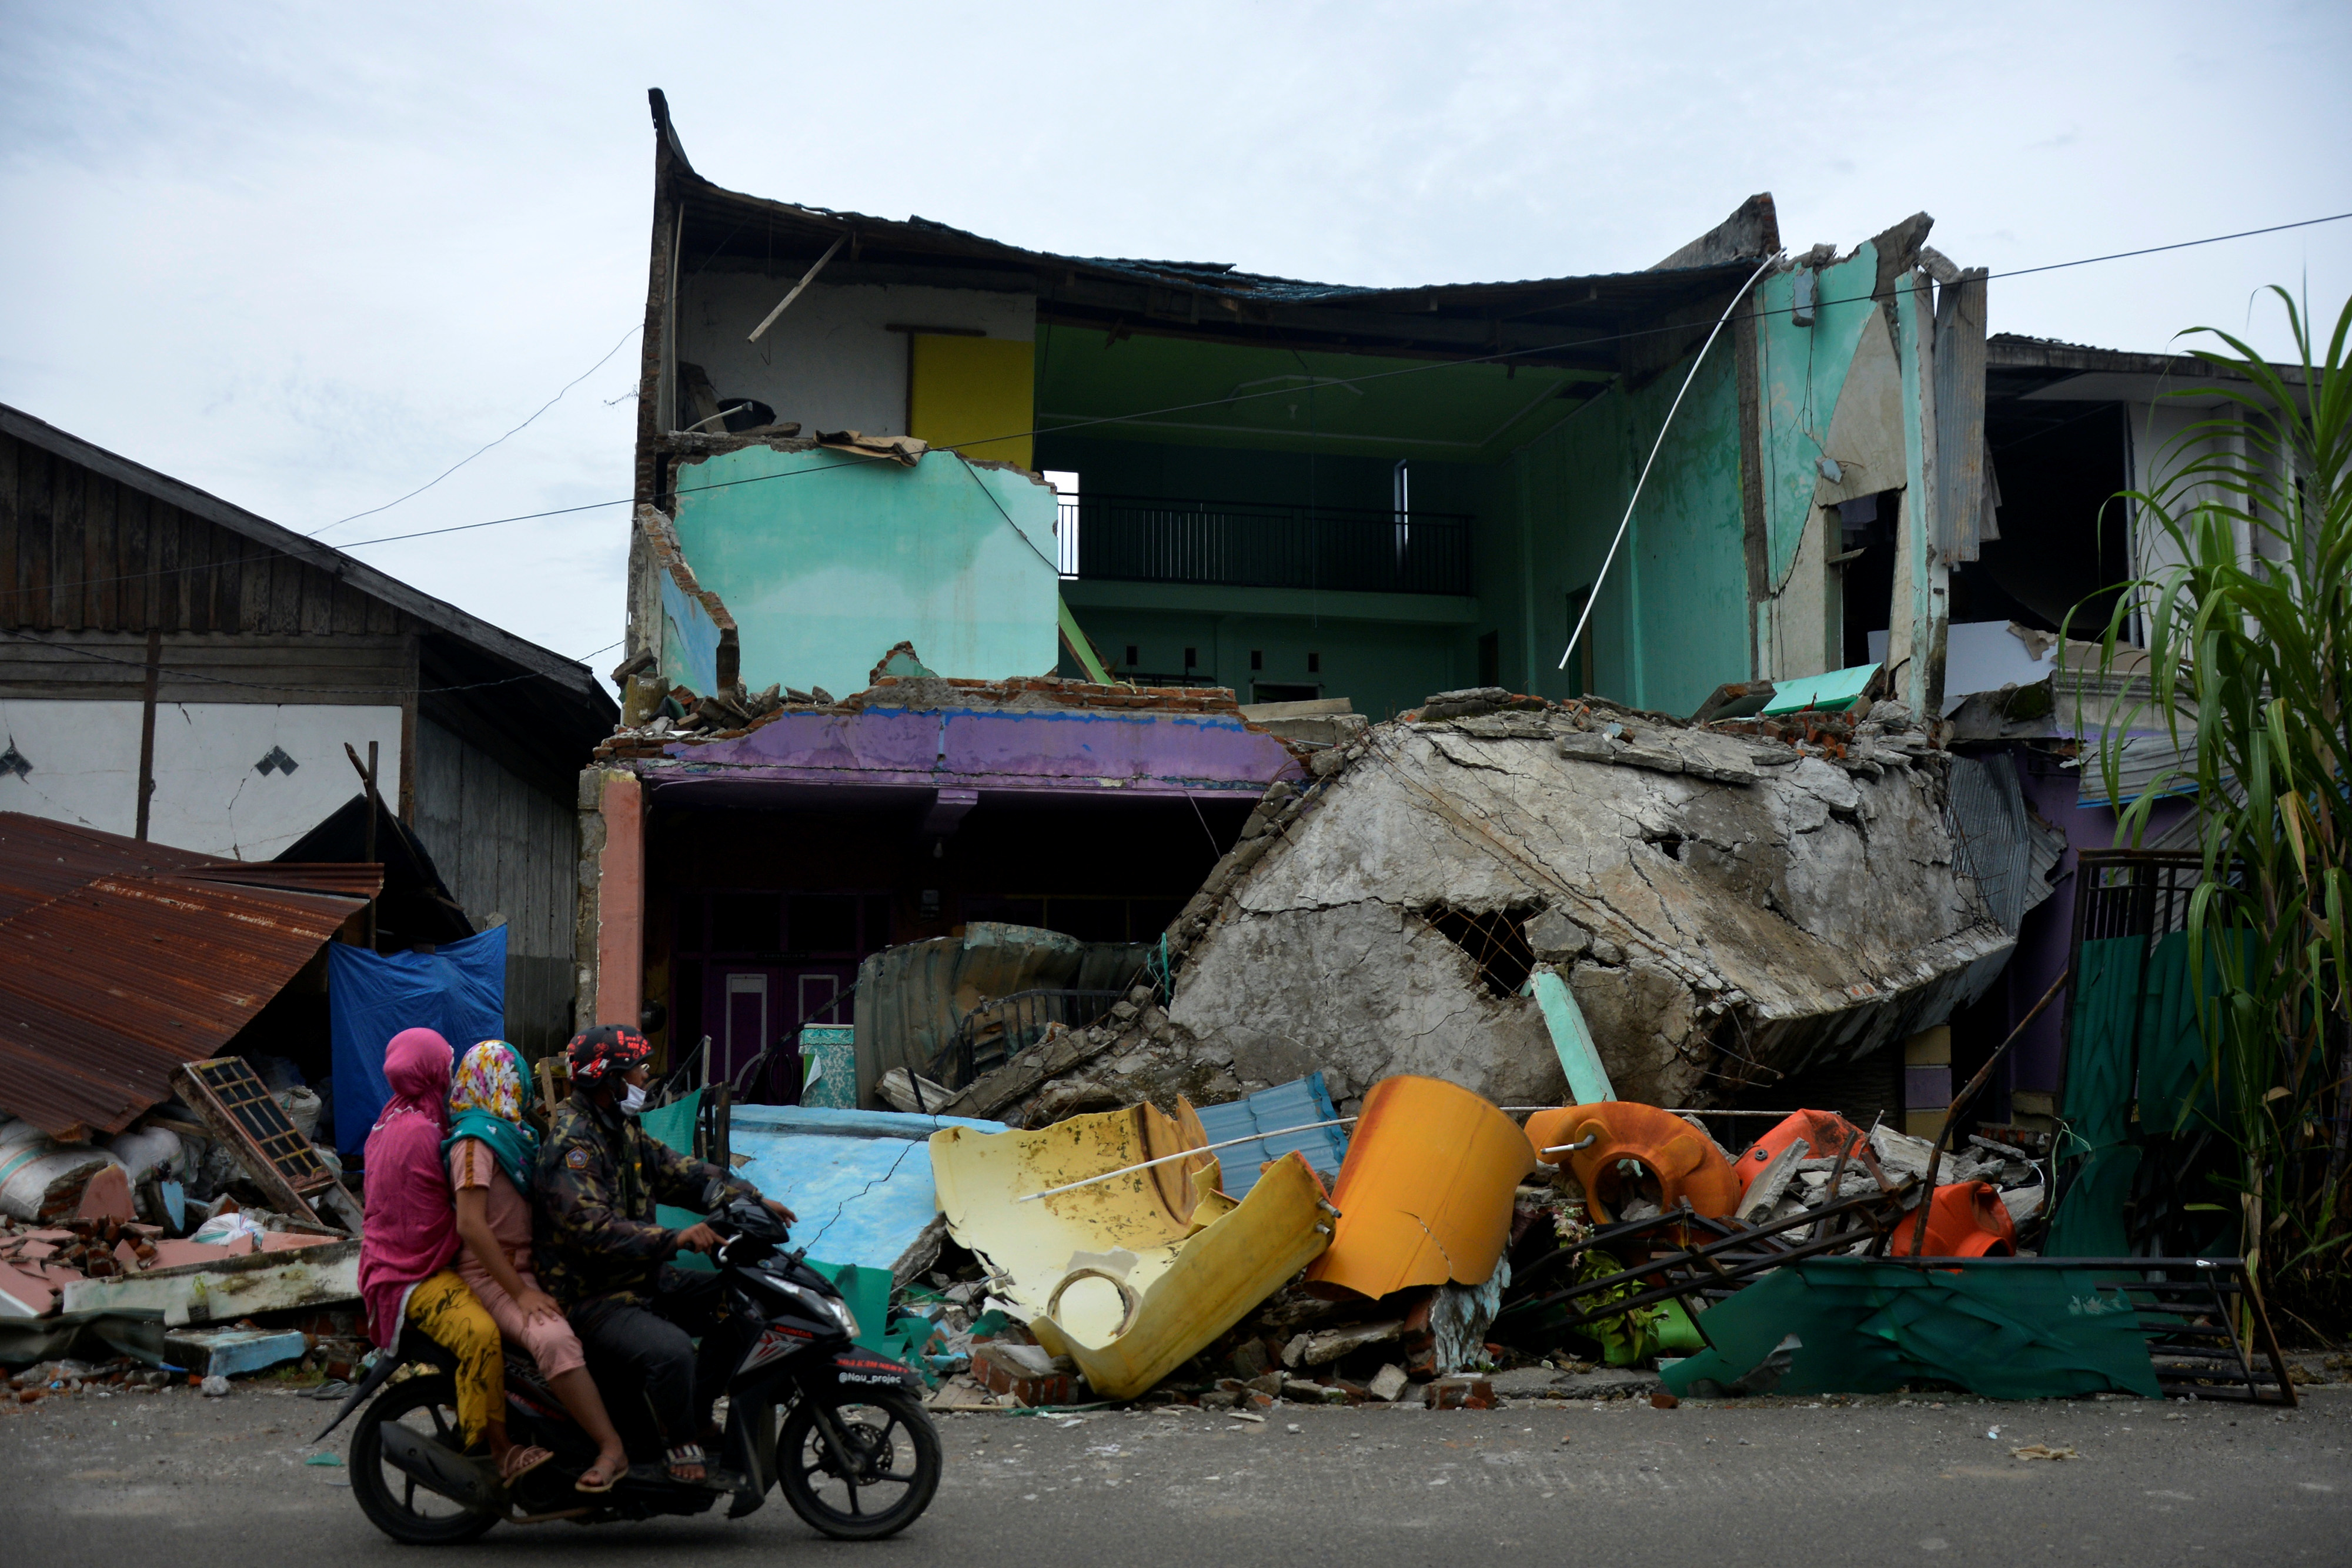 Locals ride a motorbike past a collapsed house following an earthquake in Mamuju, West Sulawesi province, Indonesia, January 17, 2021. Abriawan Abhe/Antara Foto via REUTERS